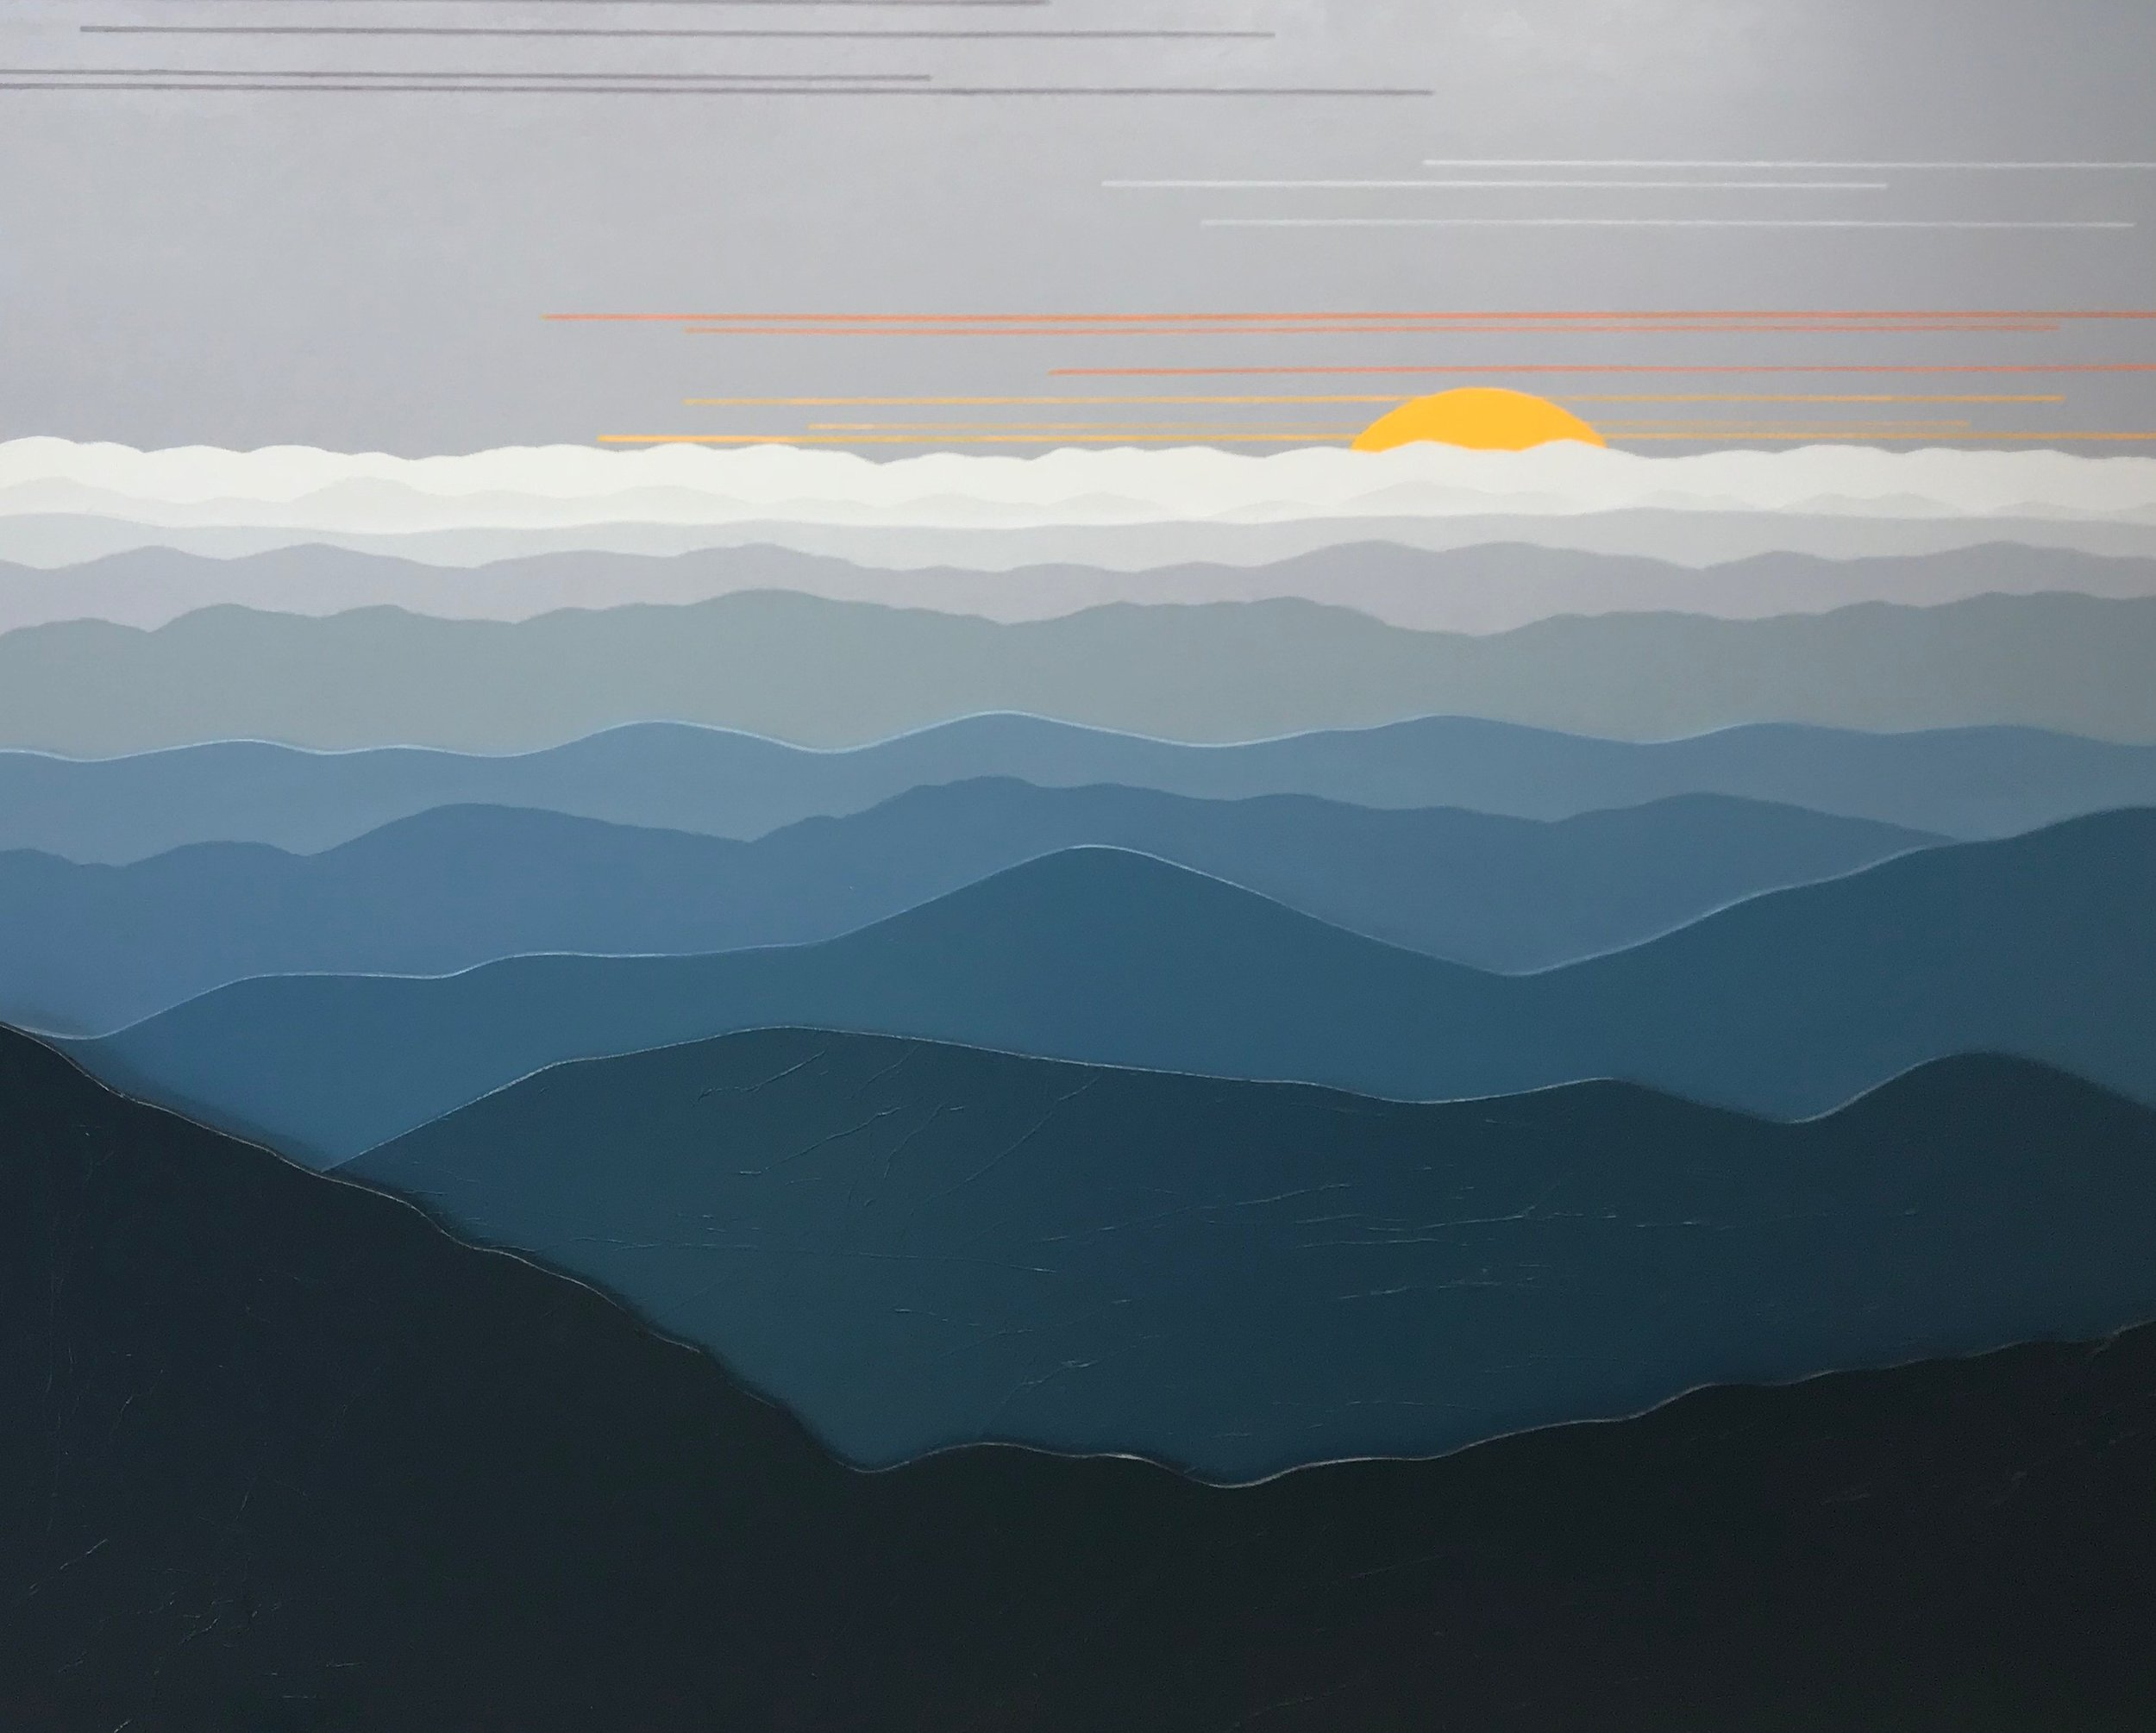 """MISTY MOUNTAIN MORNING 3D 130"", Acrylic on Layered Wood, 30 x 24 inches, $850. - SOLD"